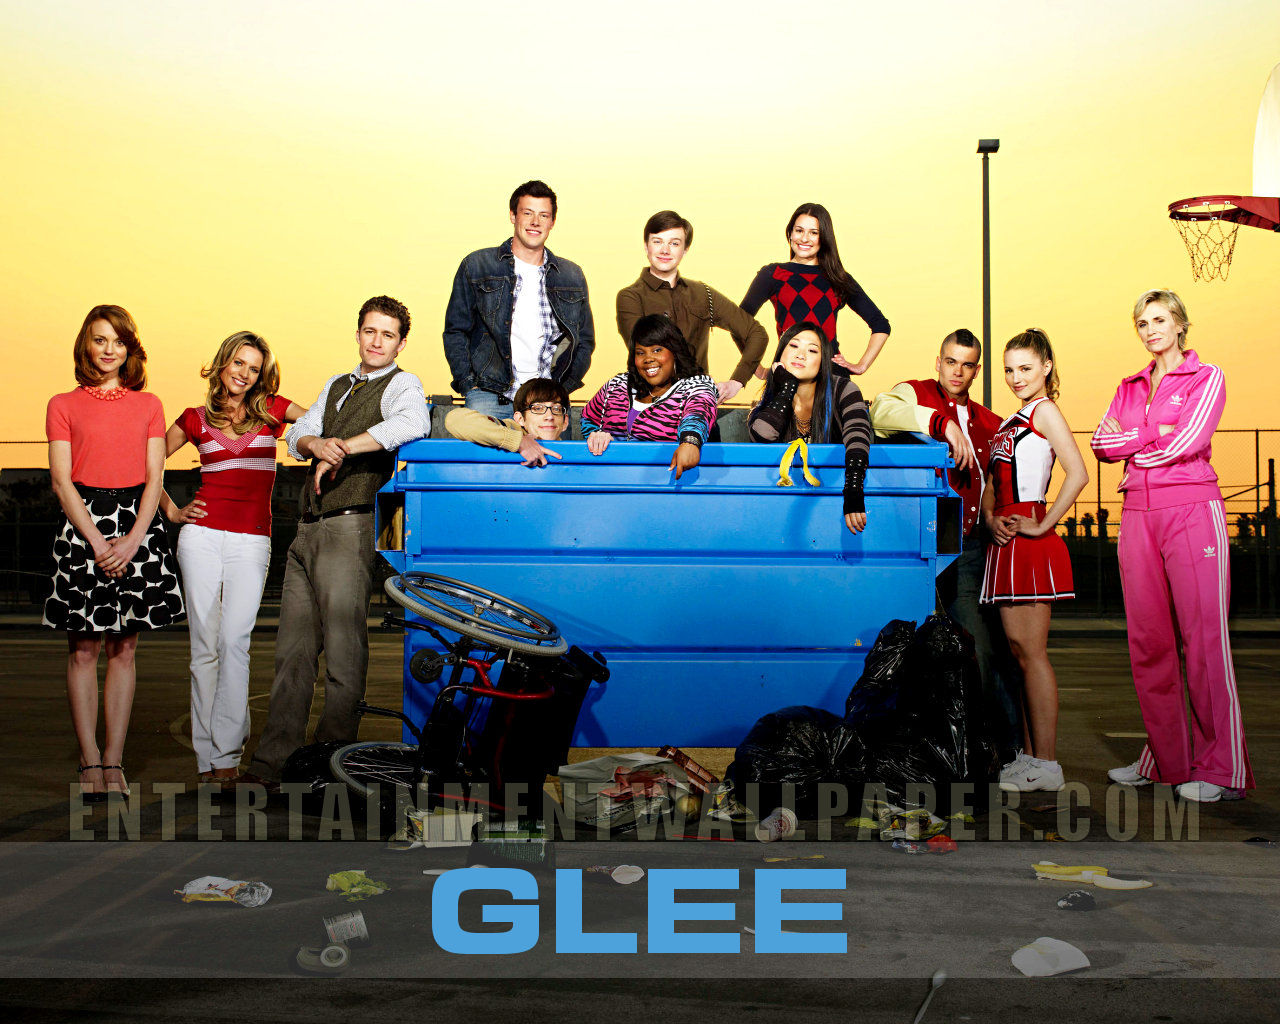 tv show glee wallpaper 20017636 size 1280x1024 more glee wallpaper 1280x1024